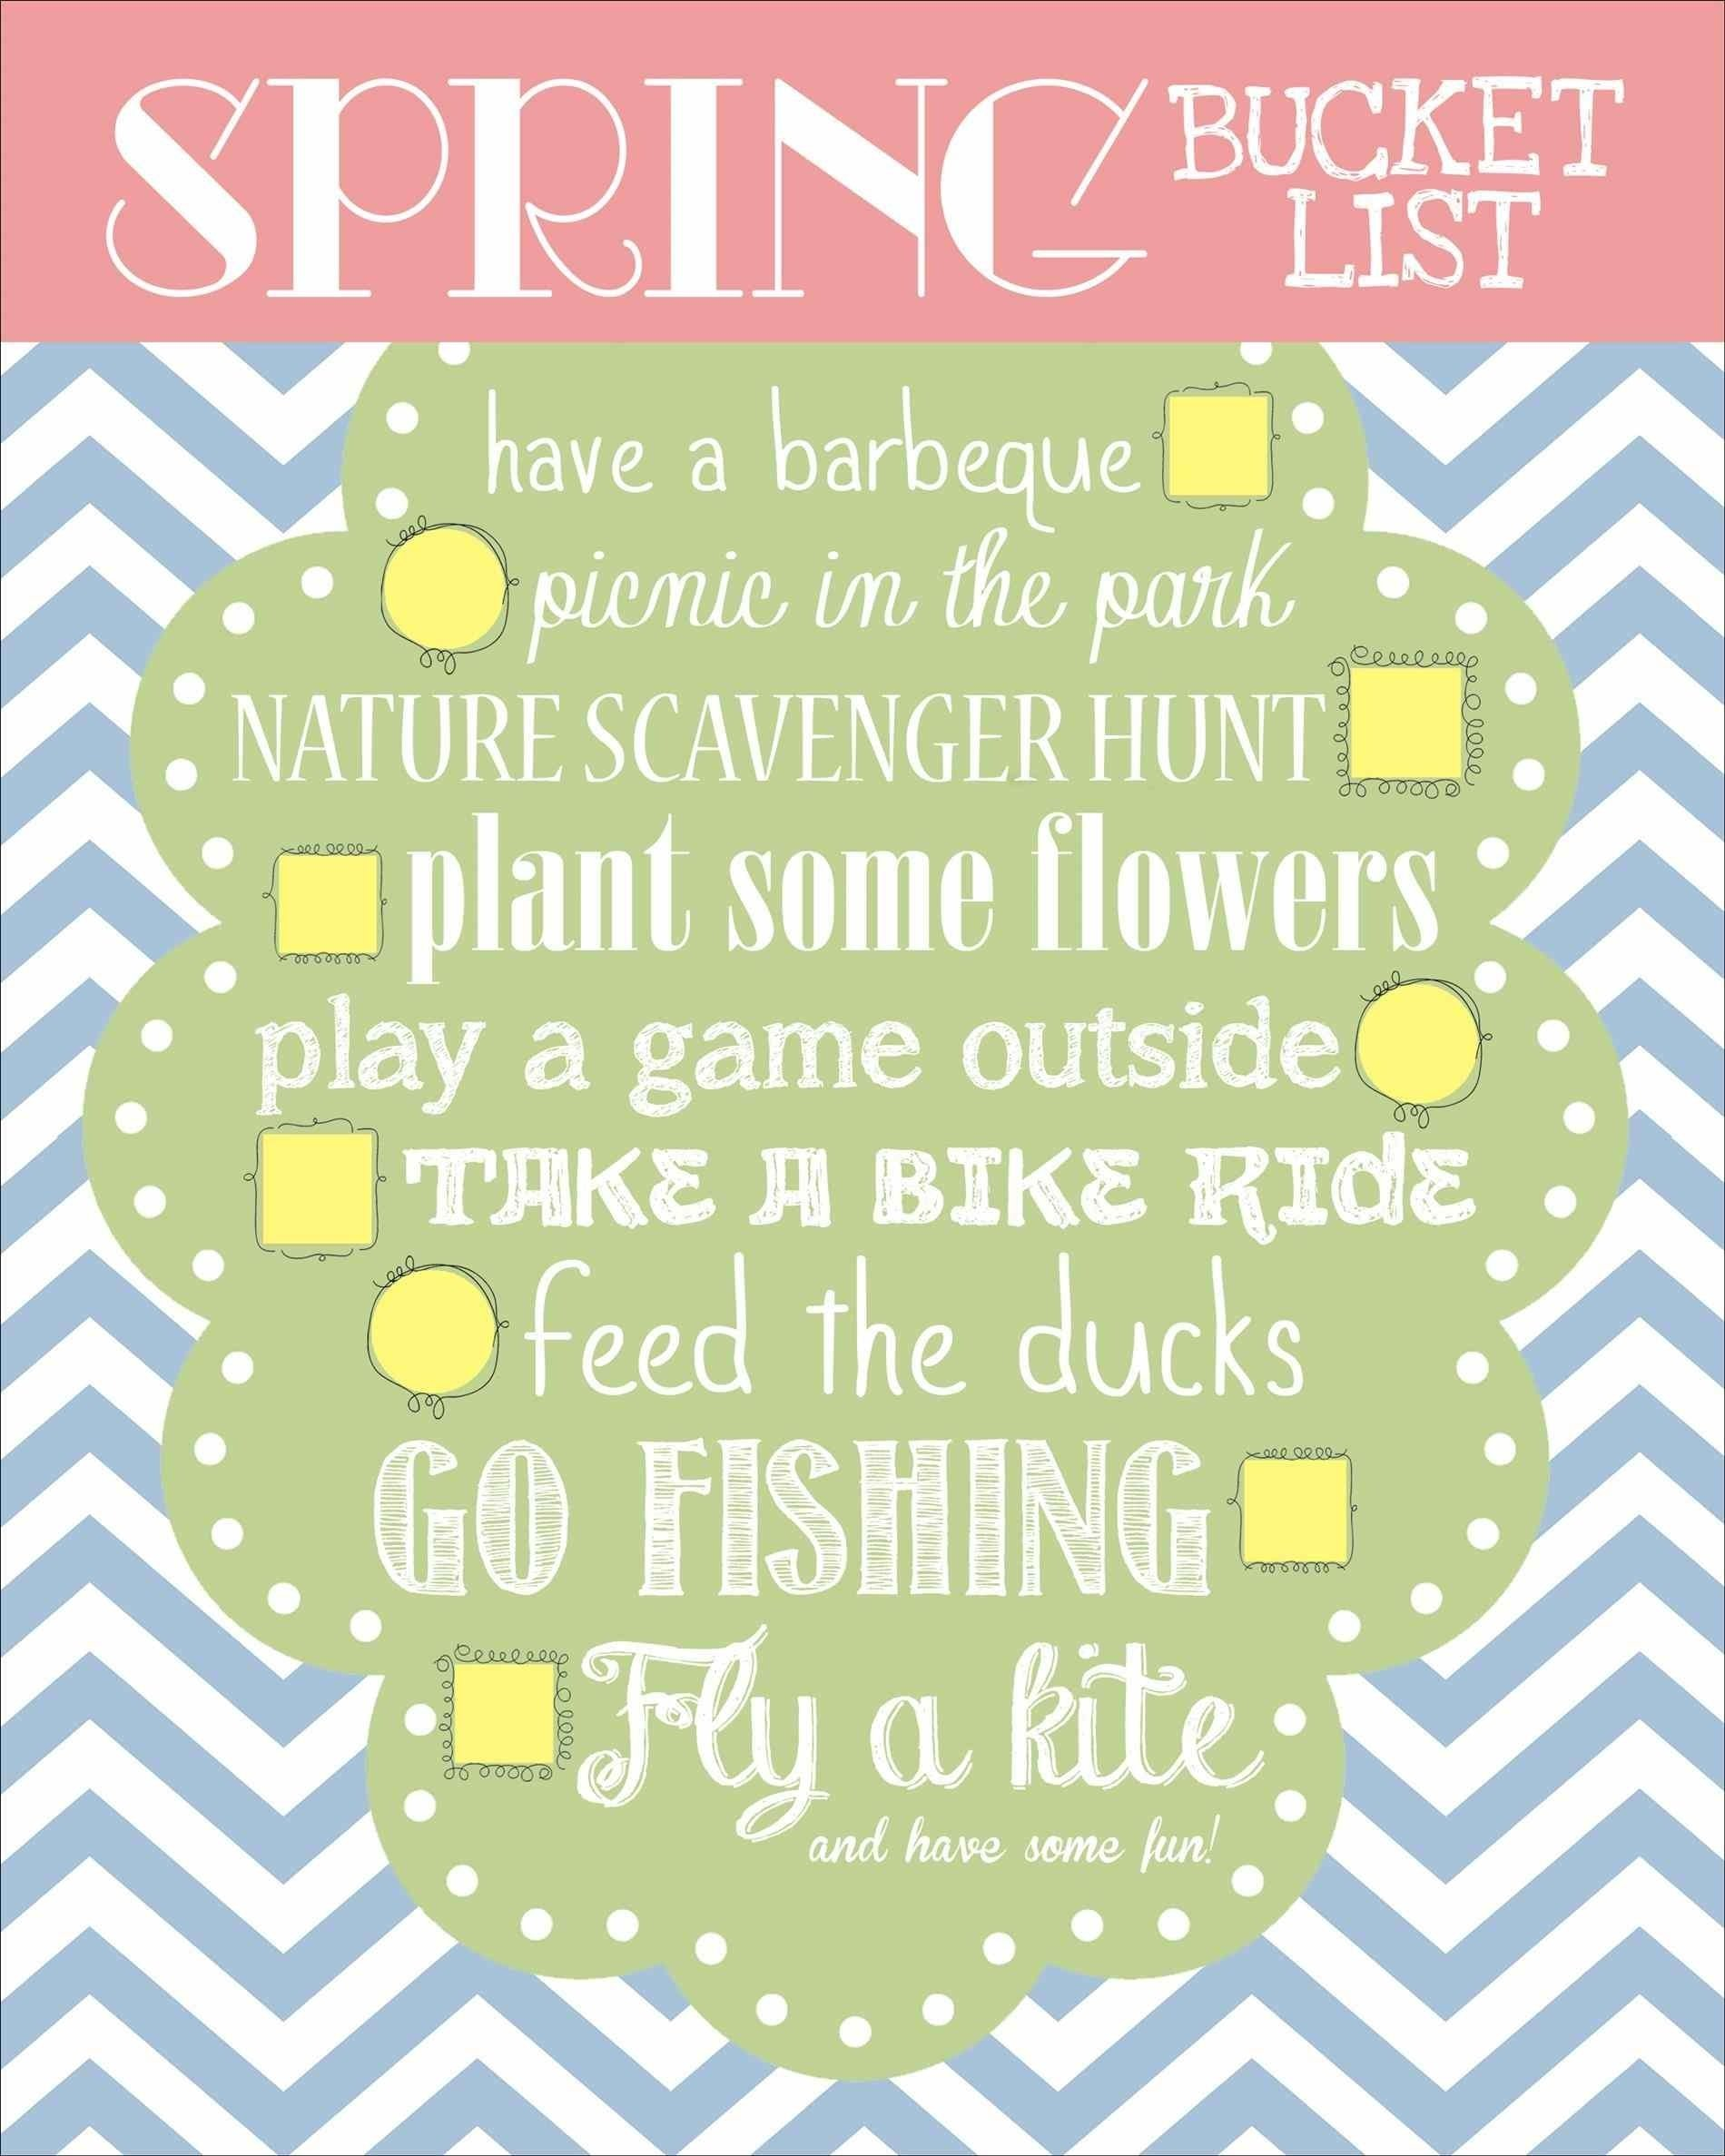 10 Attractive Spring Break Ideas For Couples college spring break ideas the best break 2018 2020